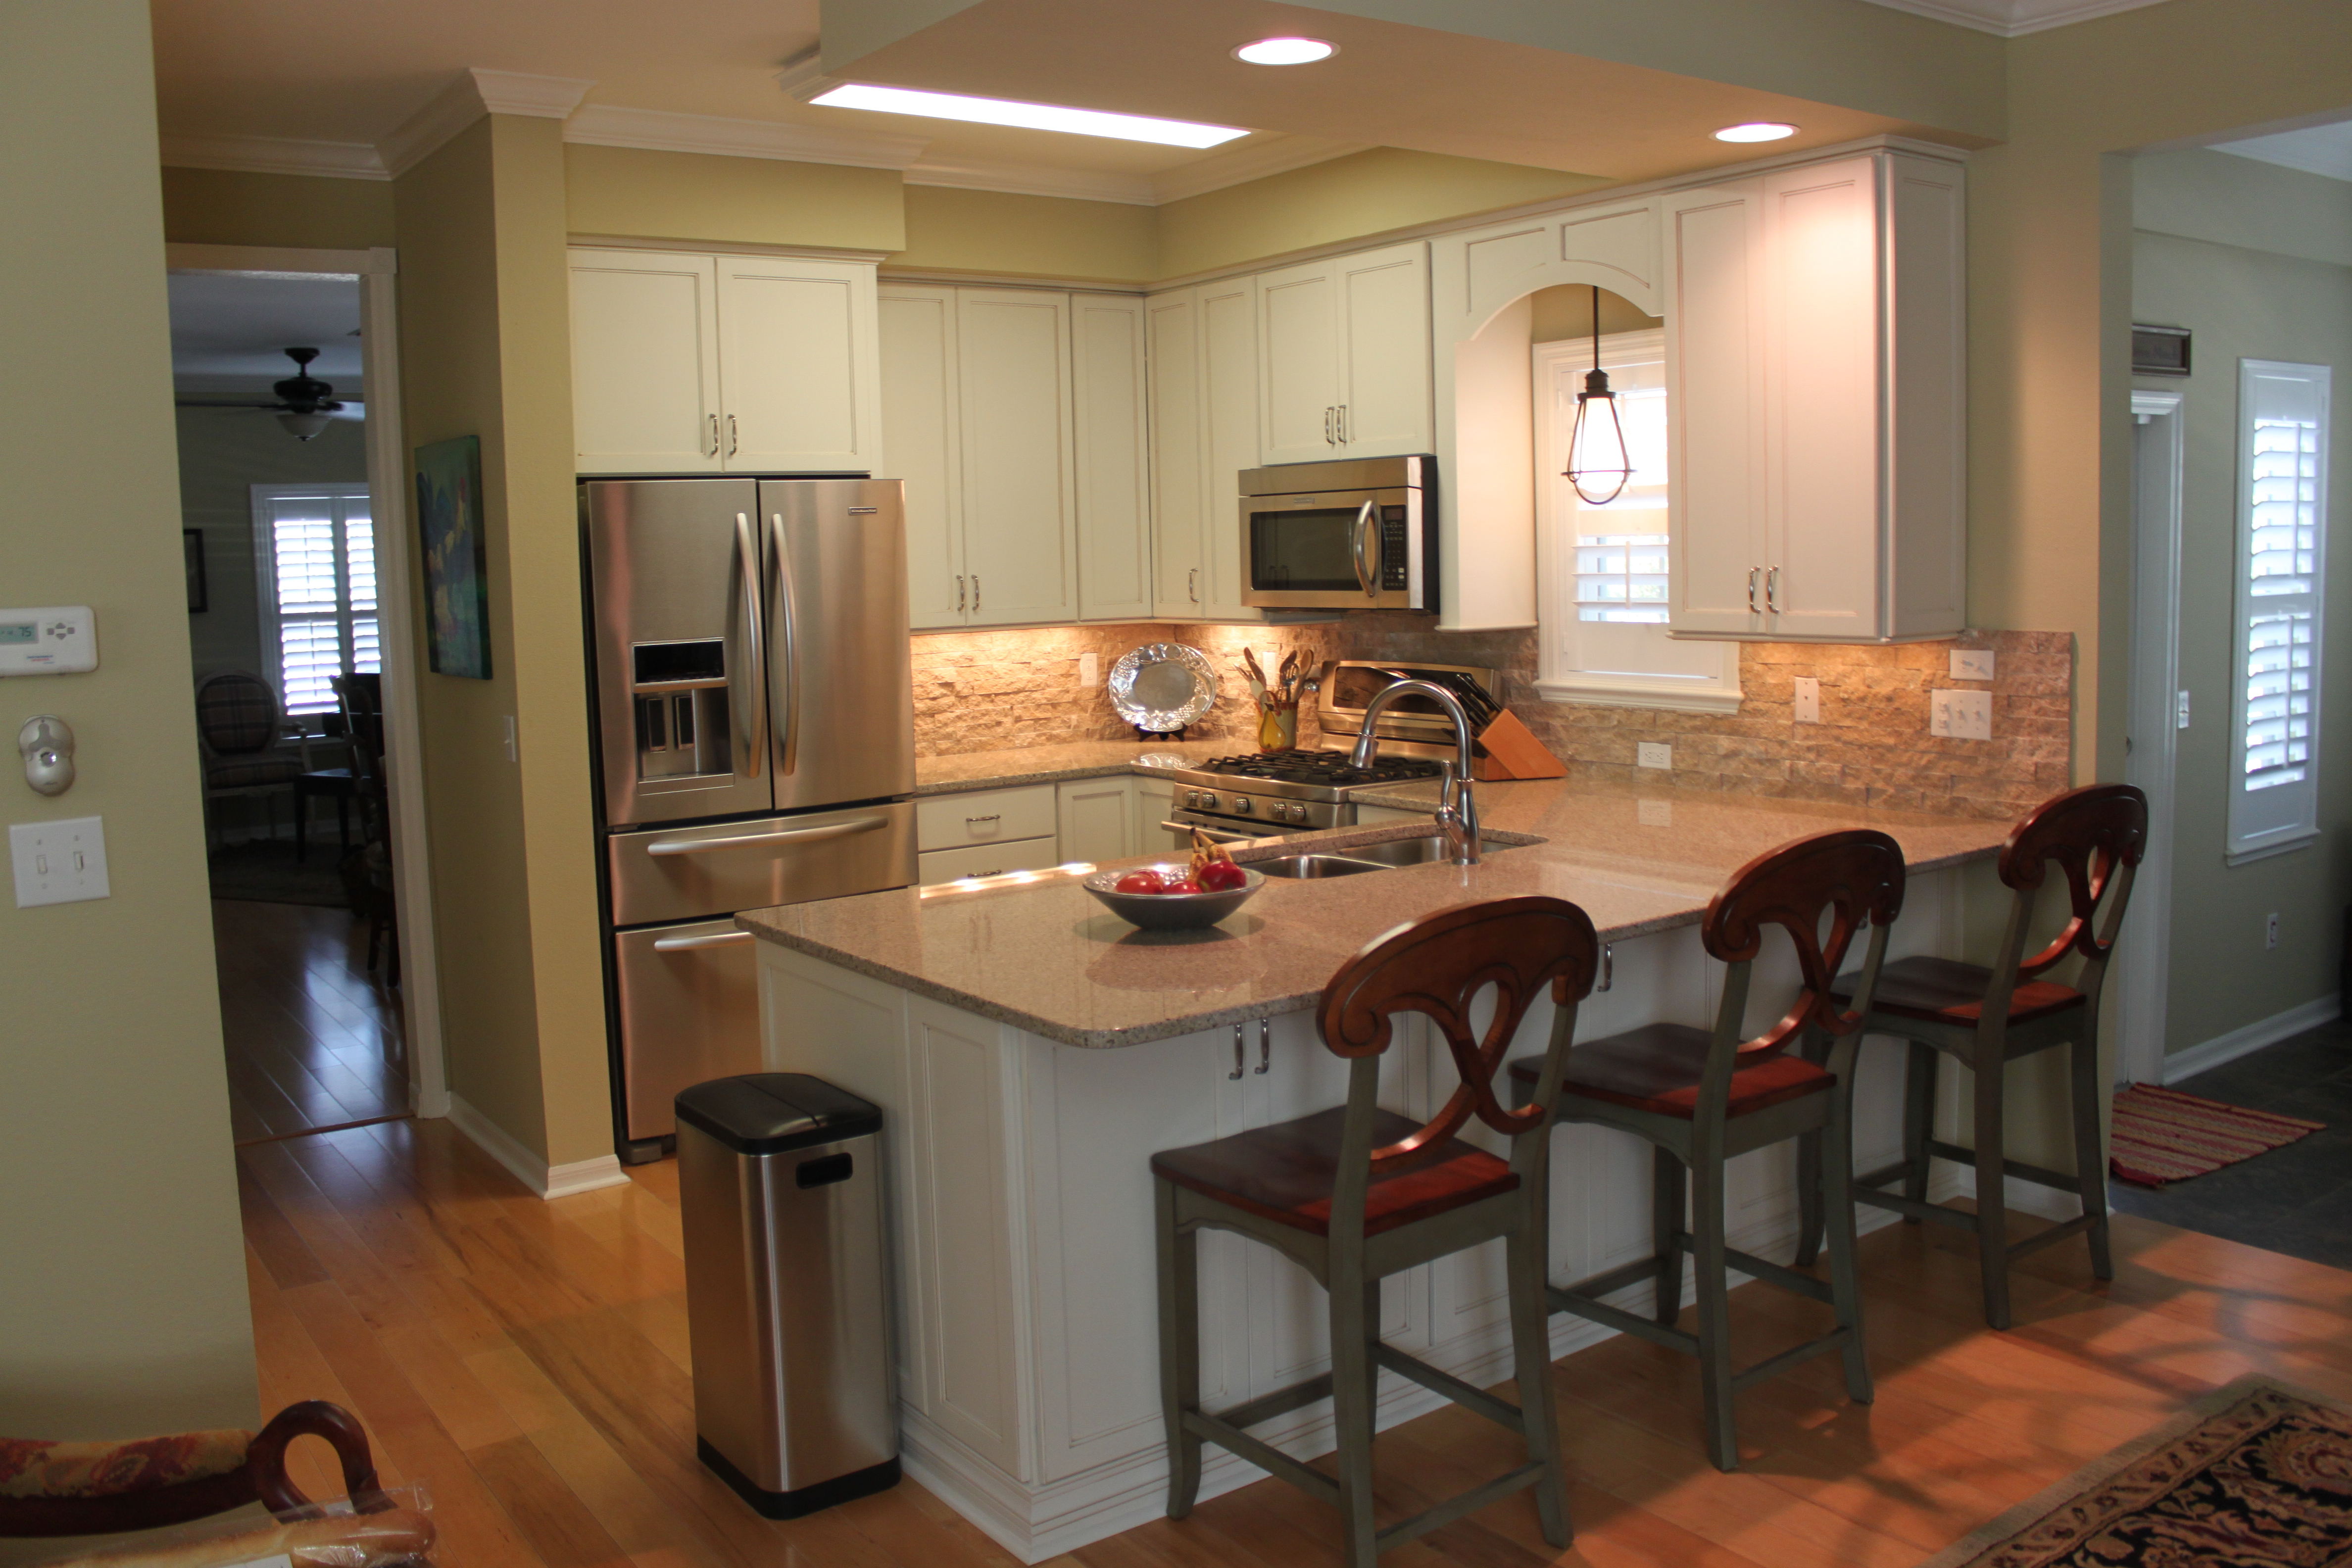 Kitchen Remodeling  What To Consider  Establishing A Budget   Selecting A  Contractor. Kitchen Remodeling  What To Consider  Establishing A Budget